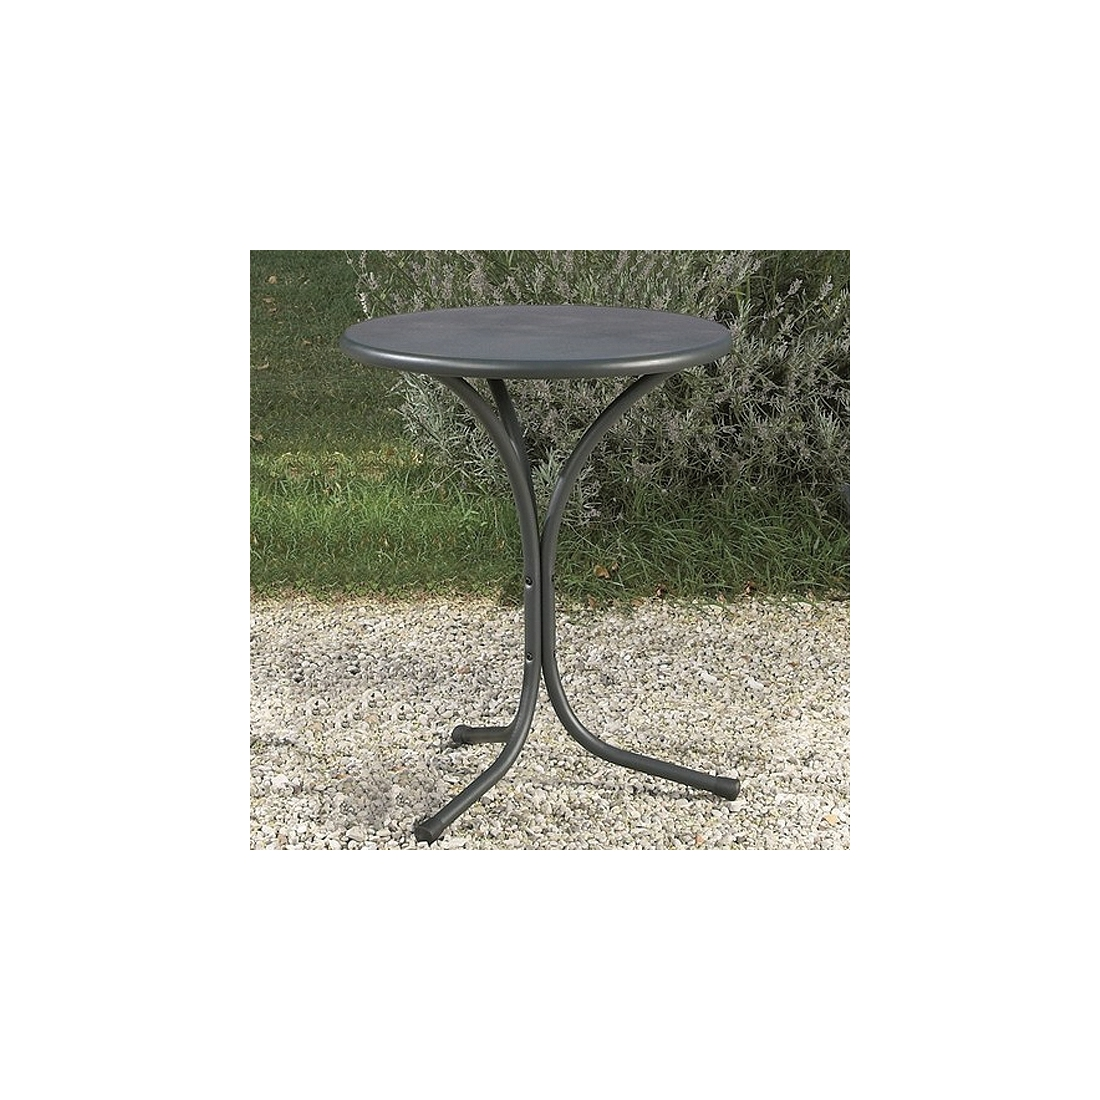 Table fisso rd italia iota tables manger design rd italia tables - Table de jardin design italien ...